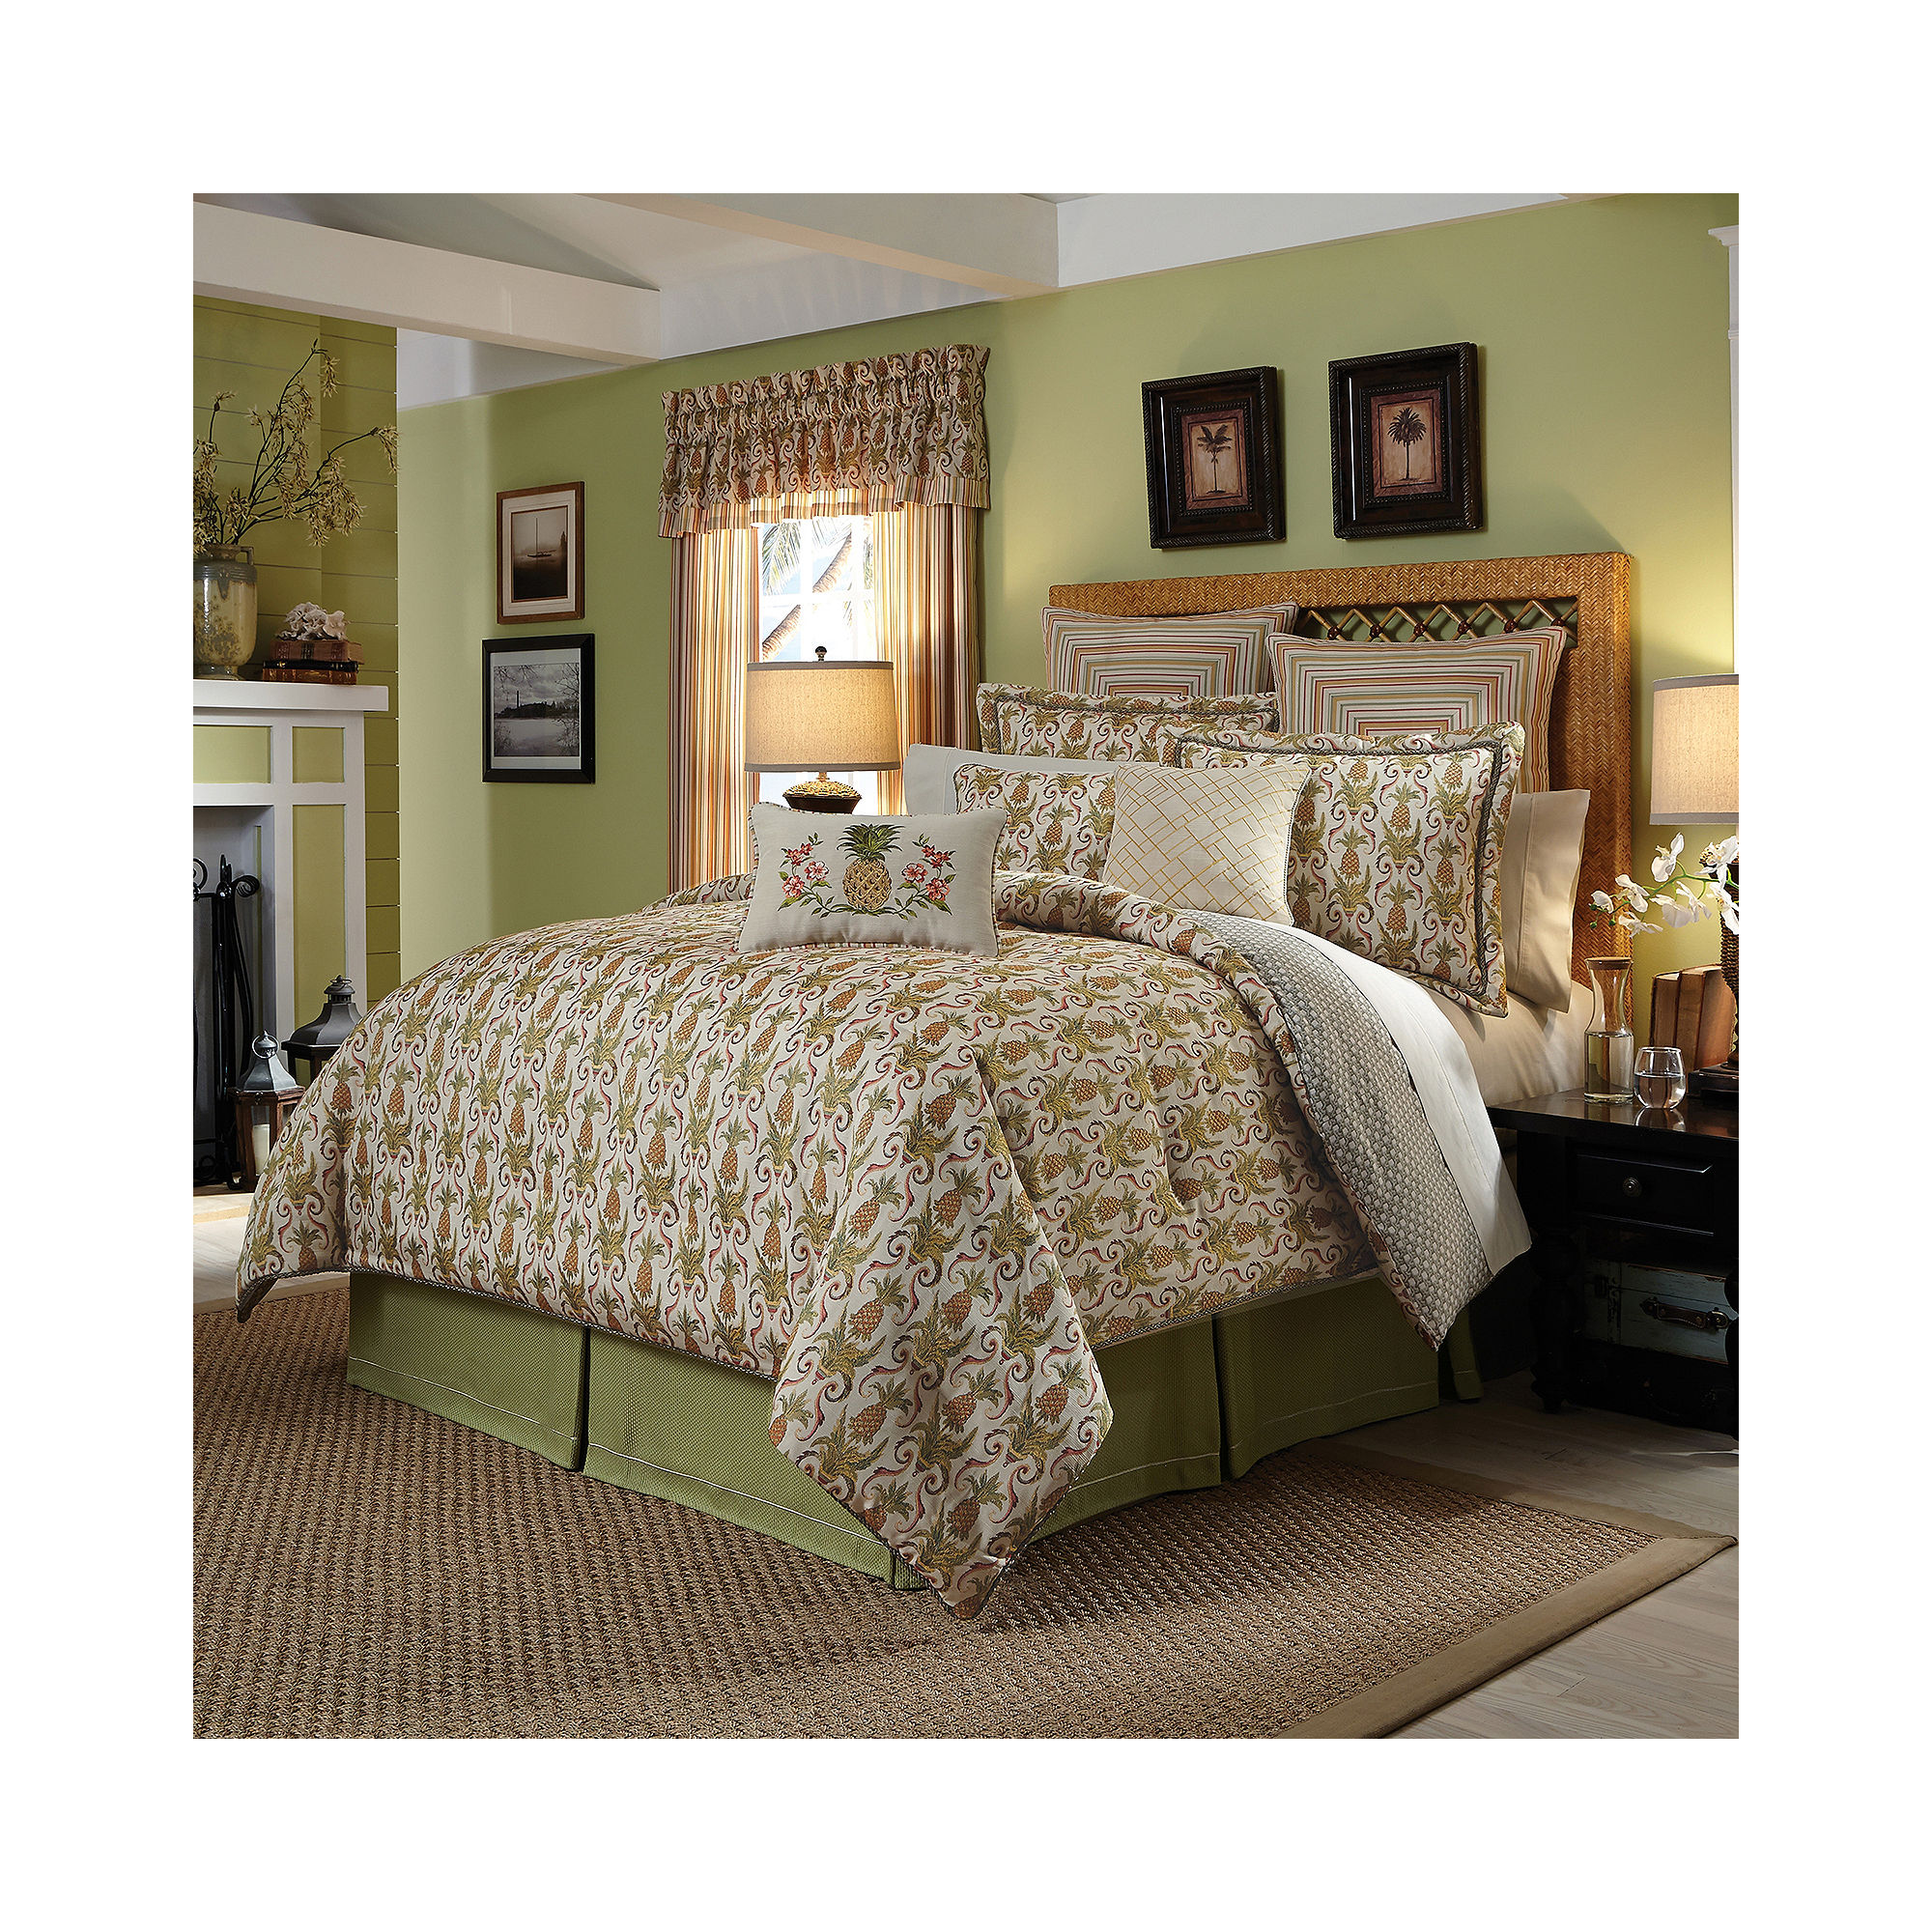 Buy Croscill Classics Bay Breeze 4 Pc Comforter Set Now